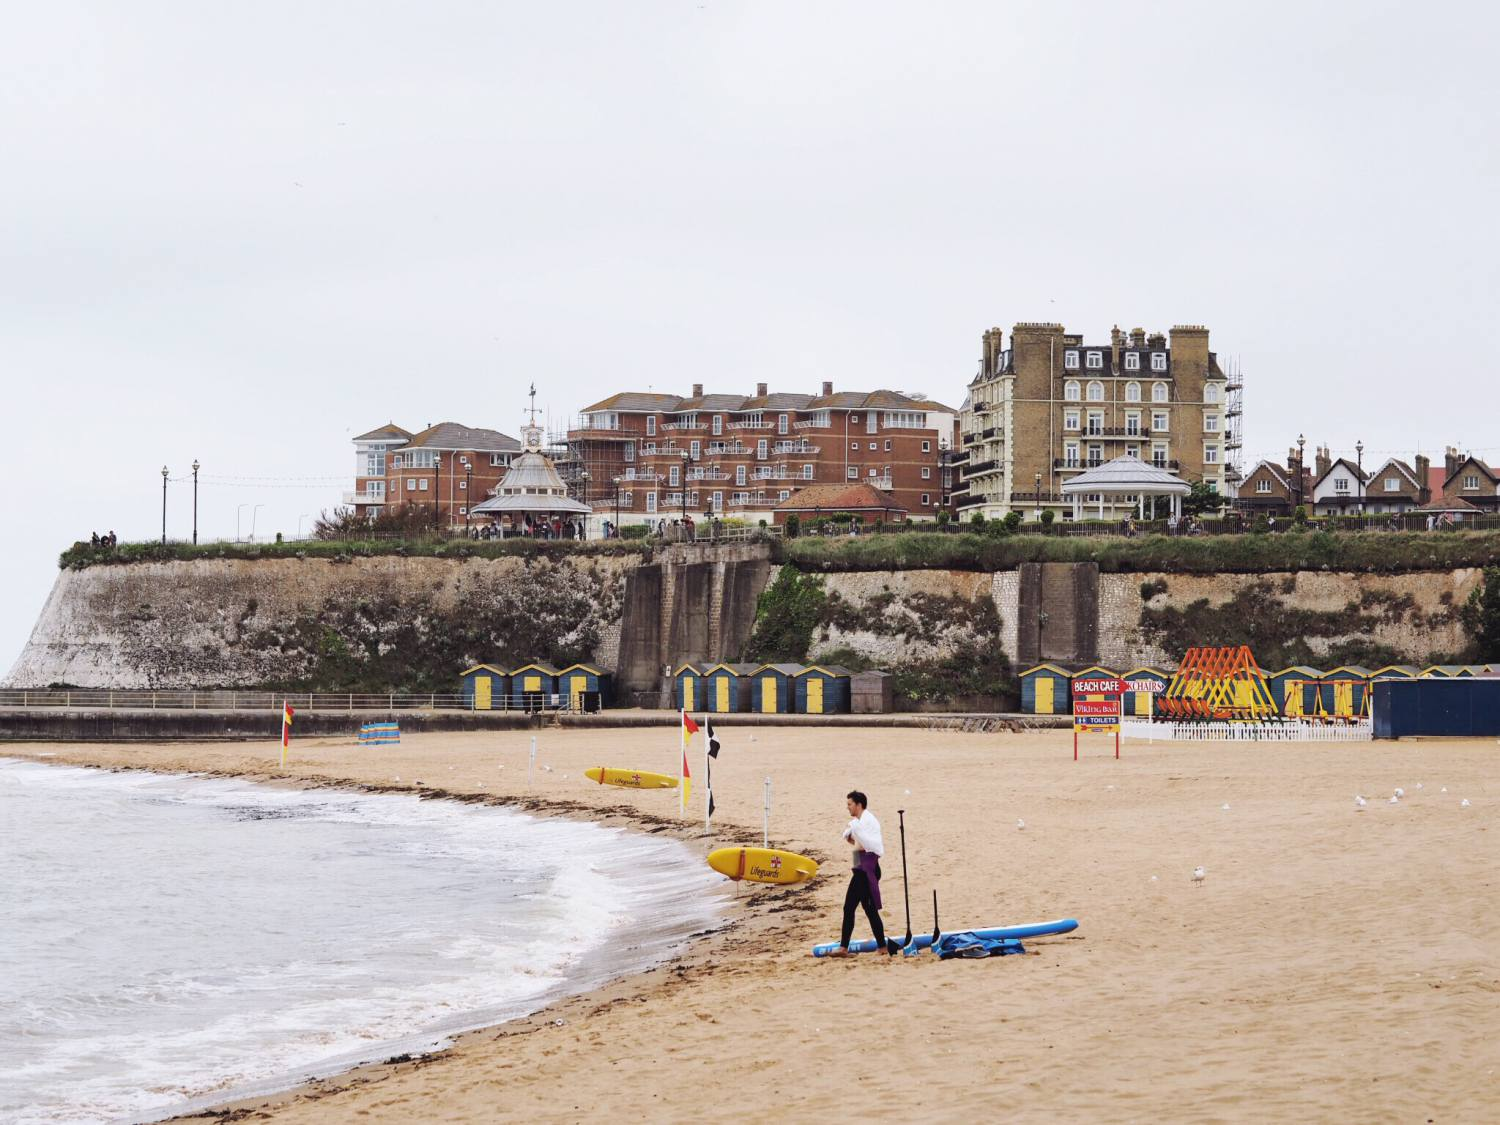 Things To Do In Broadstairs With Kids